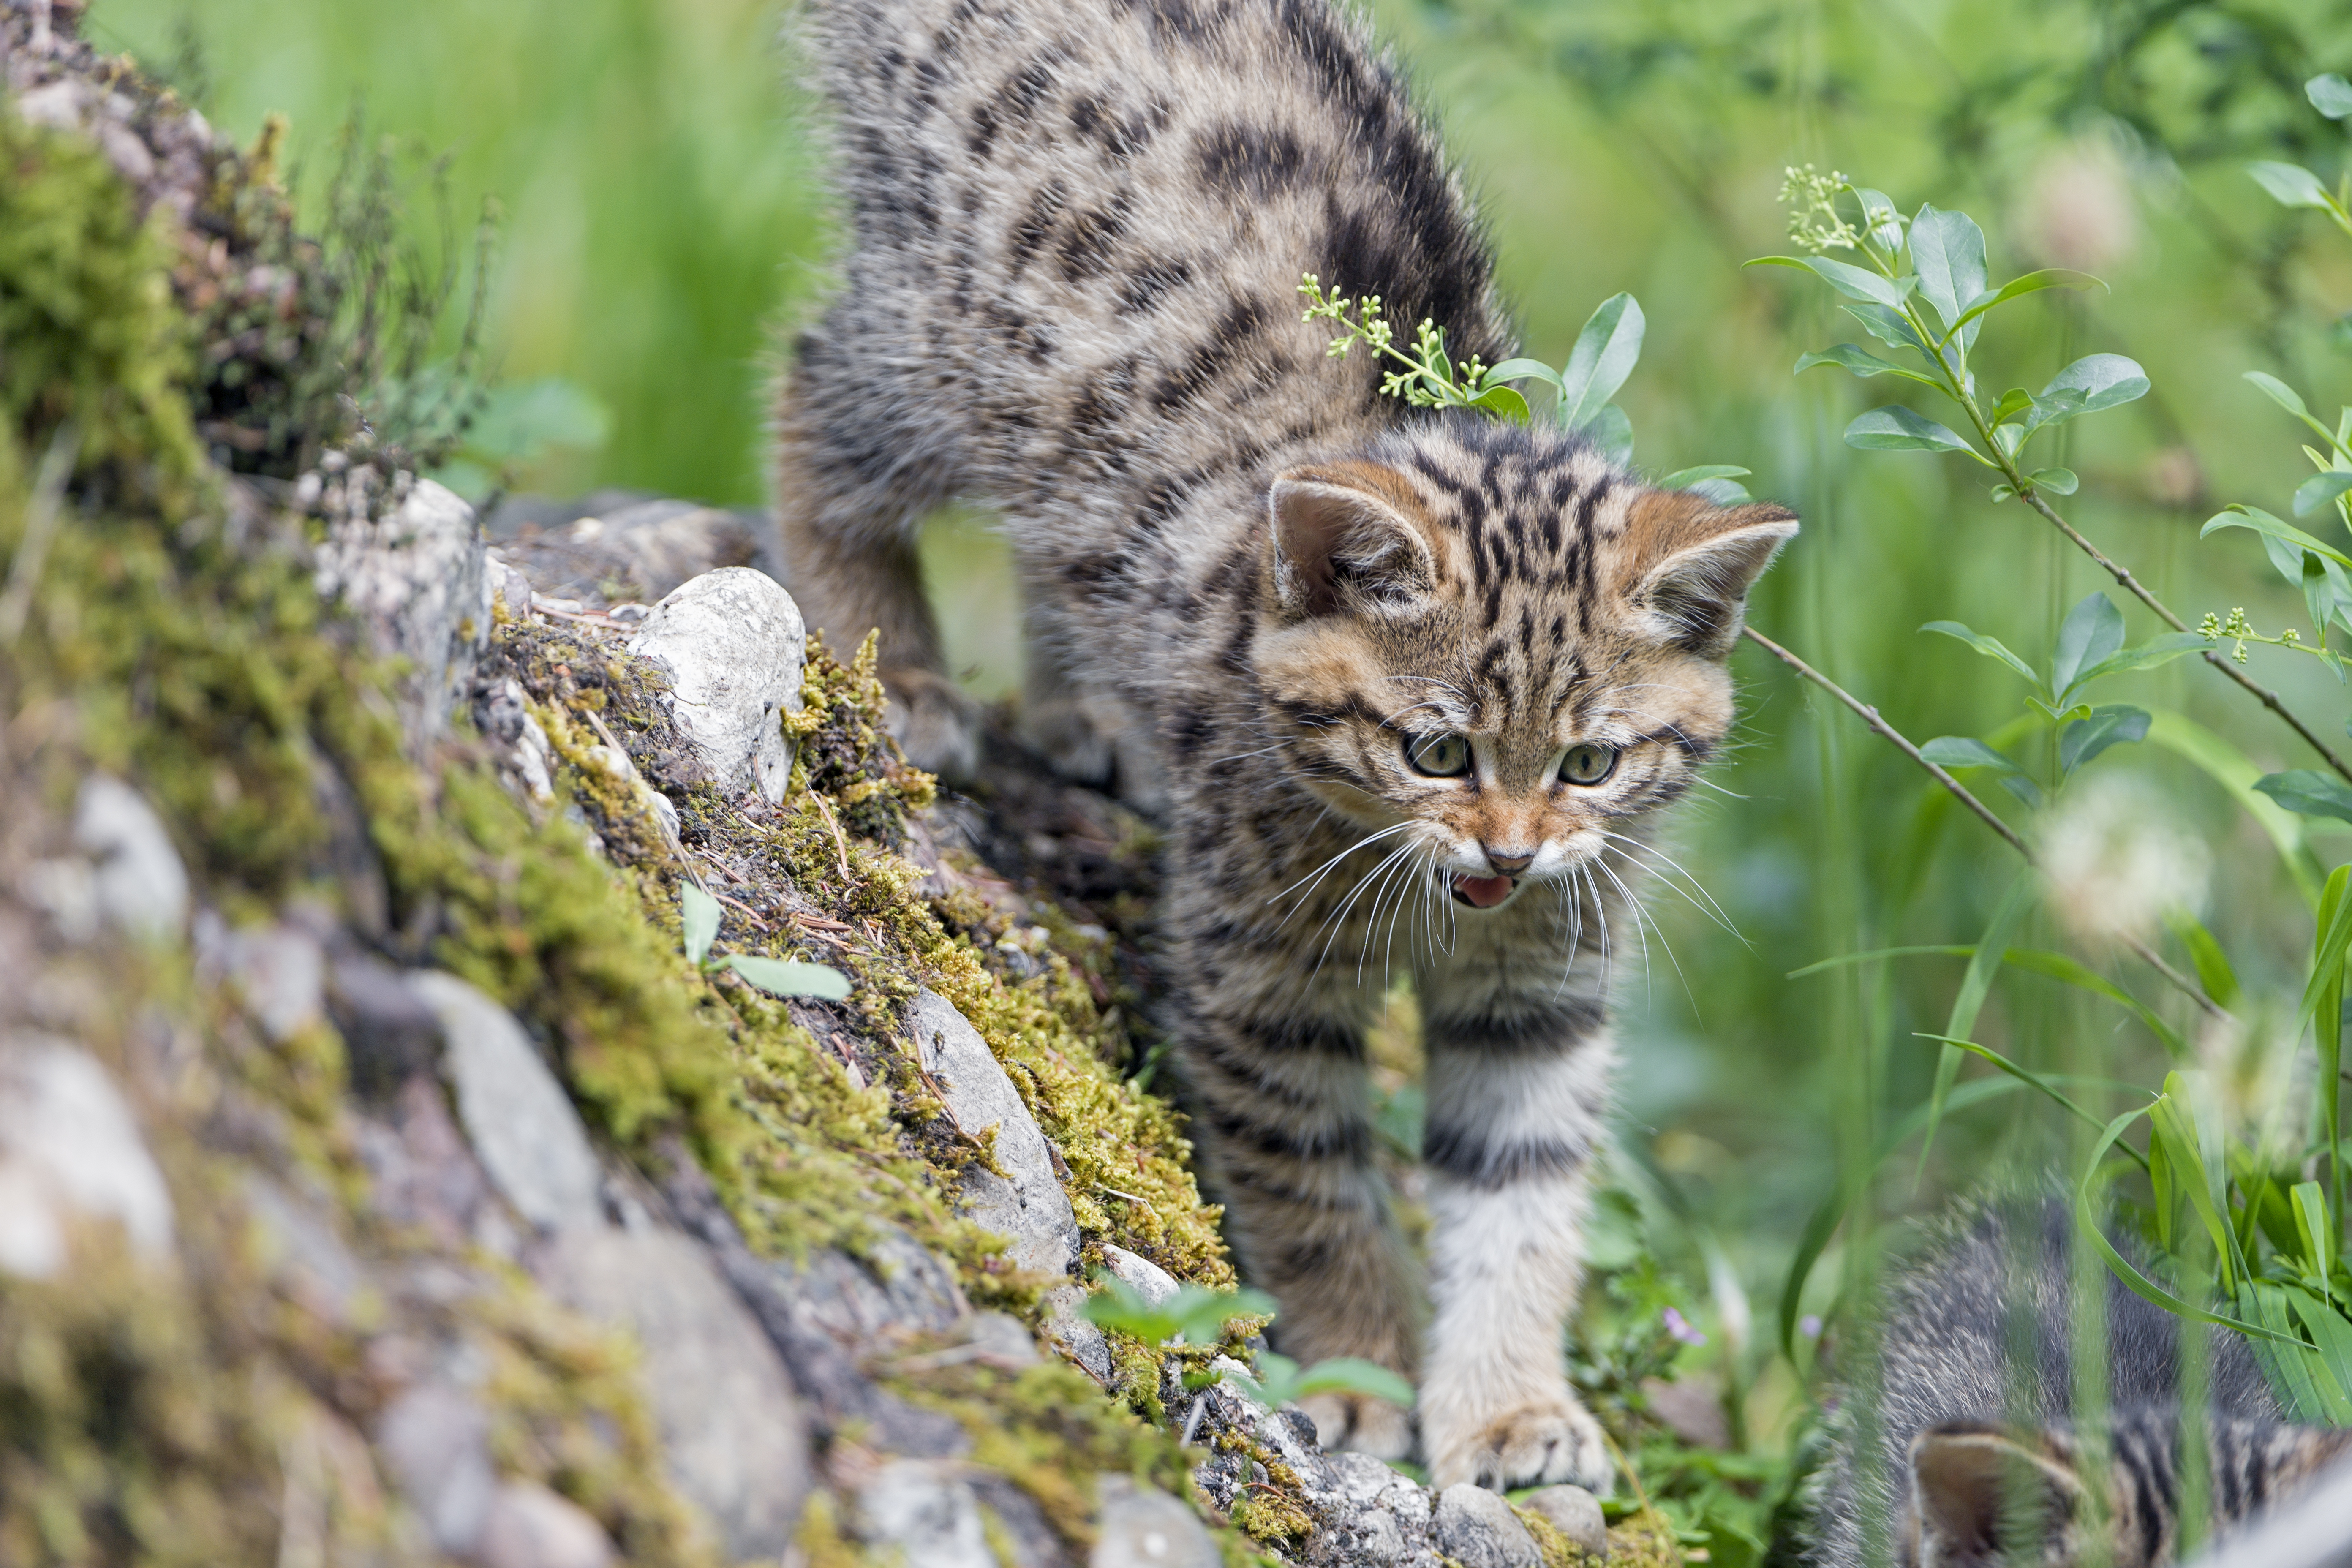 112189 Screensavers and Wallpapers Kitten for phone. Download Animals, Grass, Cat, Kitty, Kitten, Grin, Stroll, Wild Cat, Wildcat pictures for free